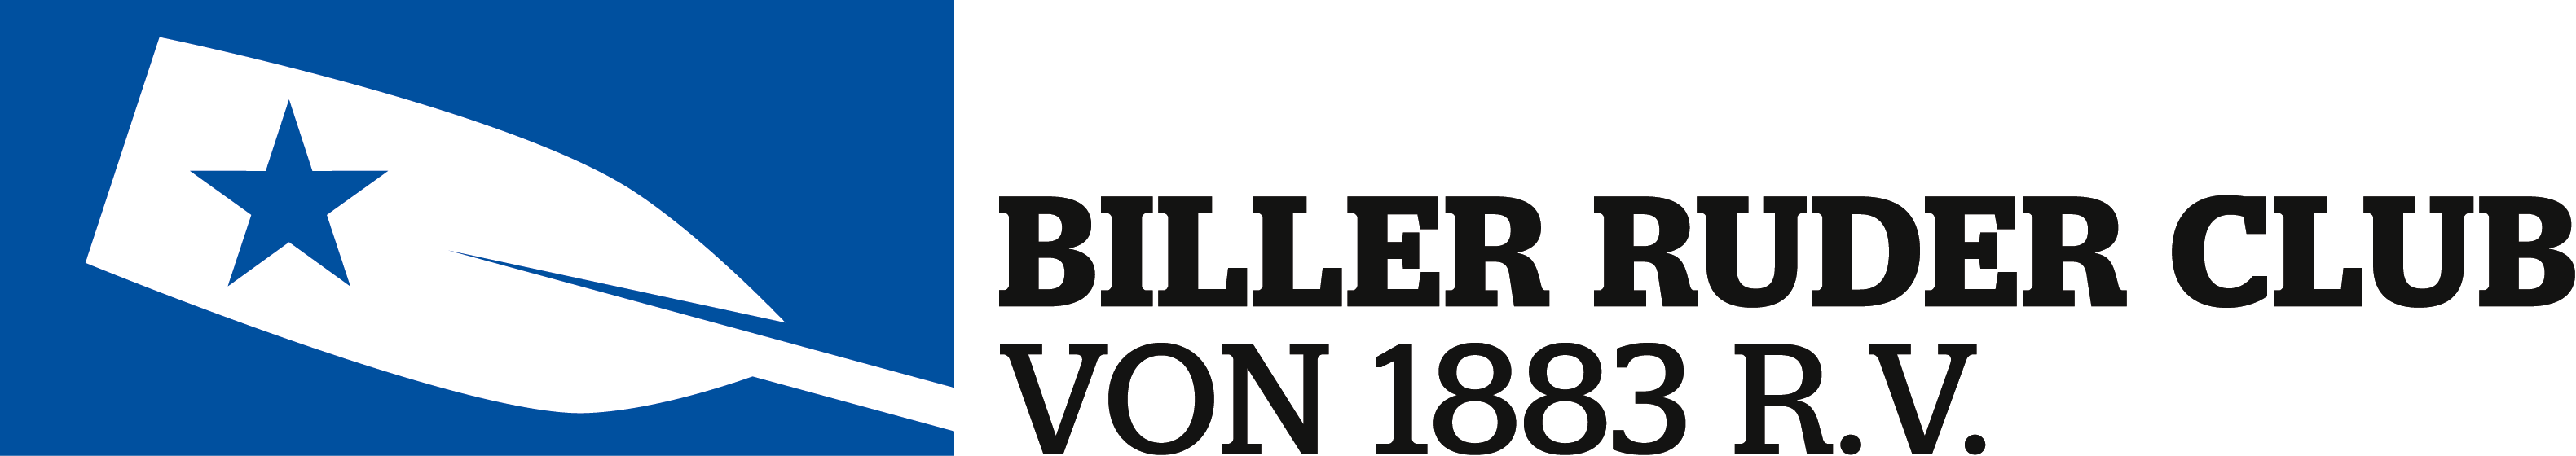 Biller Ruder Club